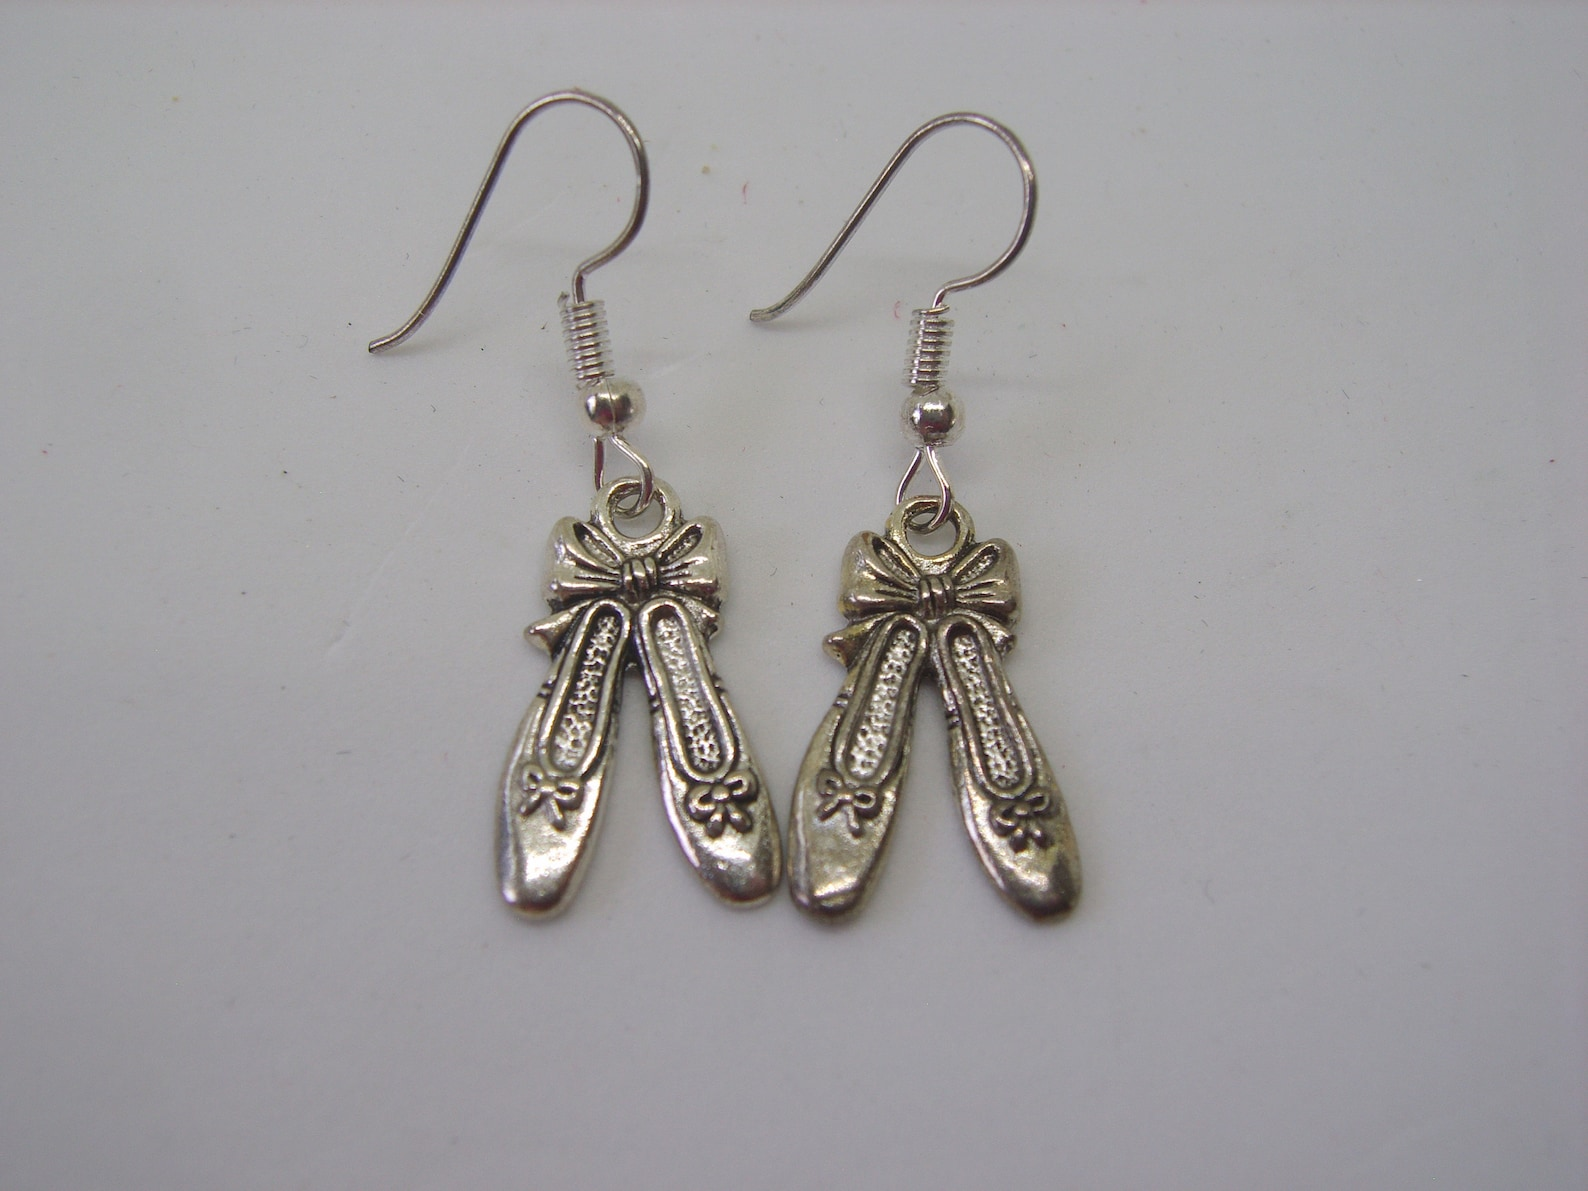 silver plated ballet shoe earrings, ballet shoe earrings, silver plated earrings